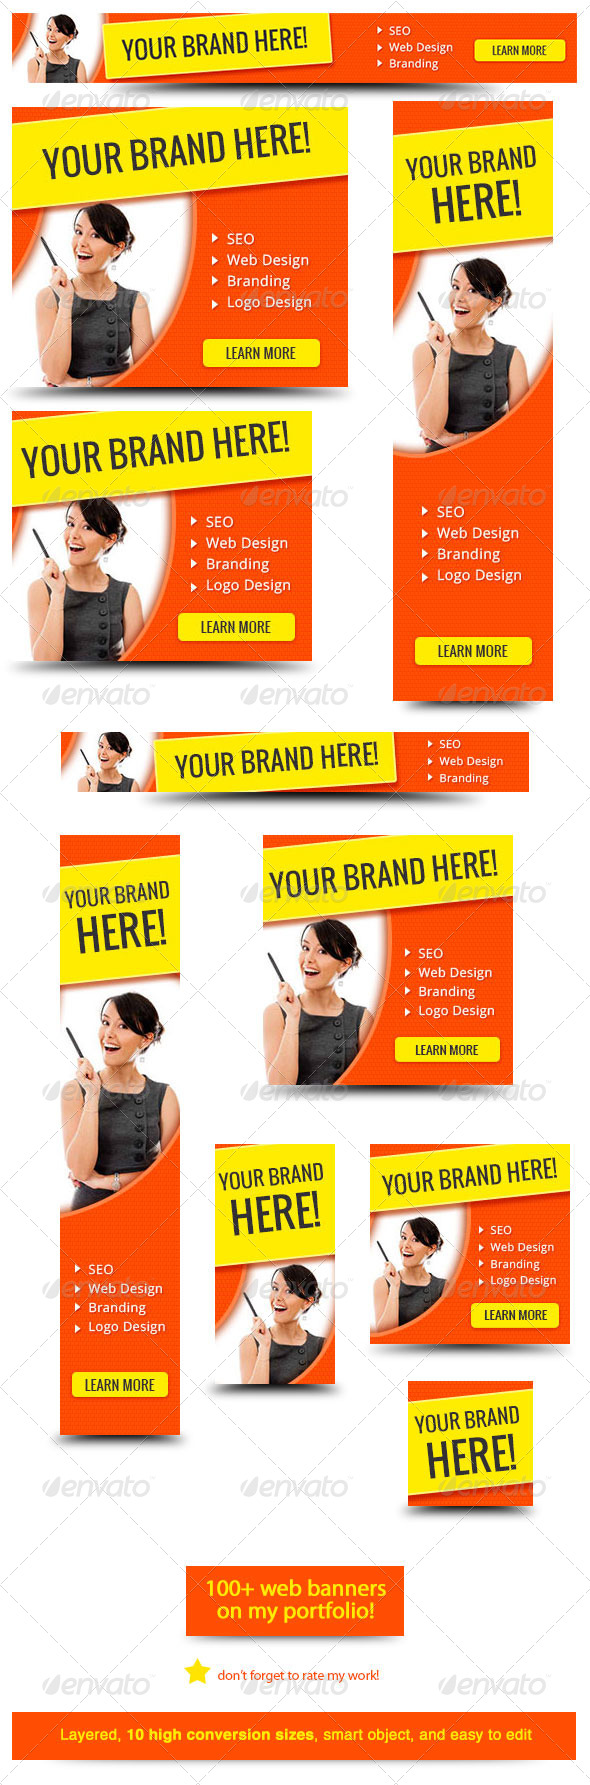 Design for banner ads - Your Brand Here Web Banner Banners Ads Web Elements